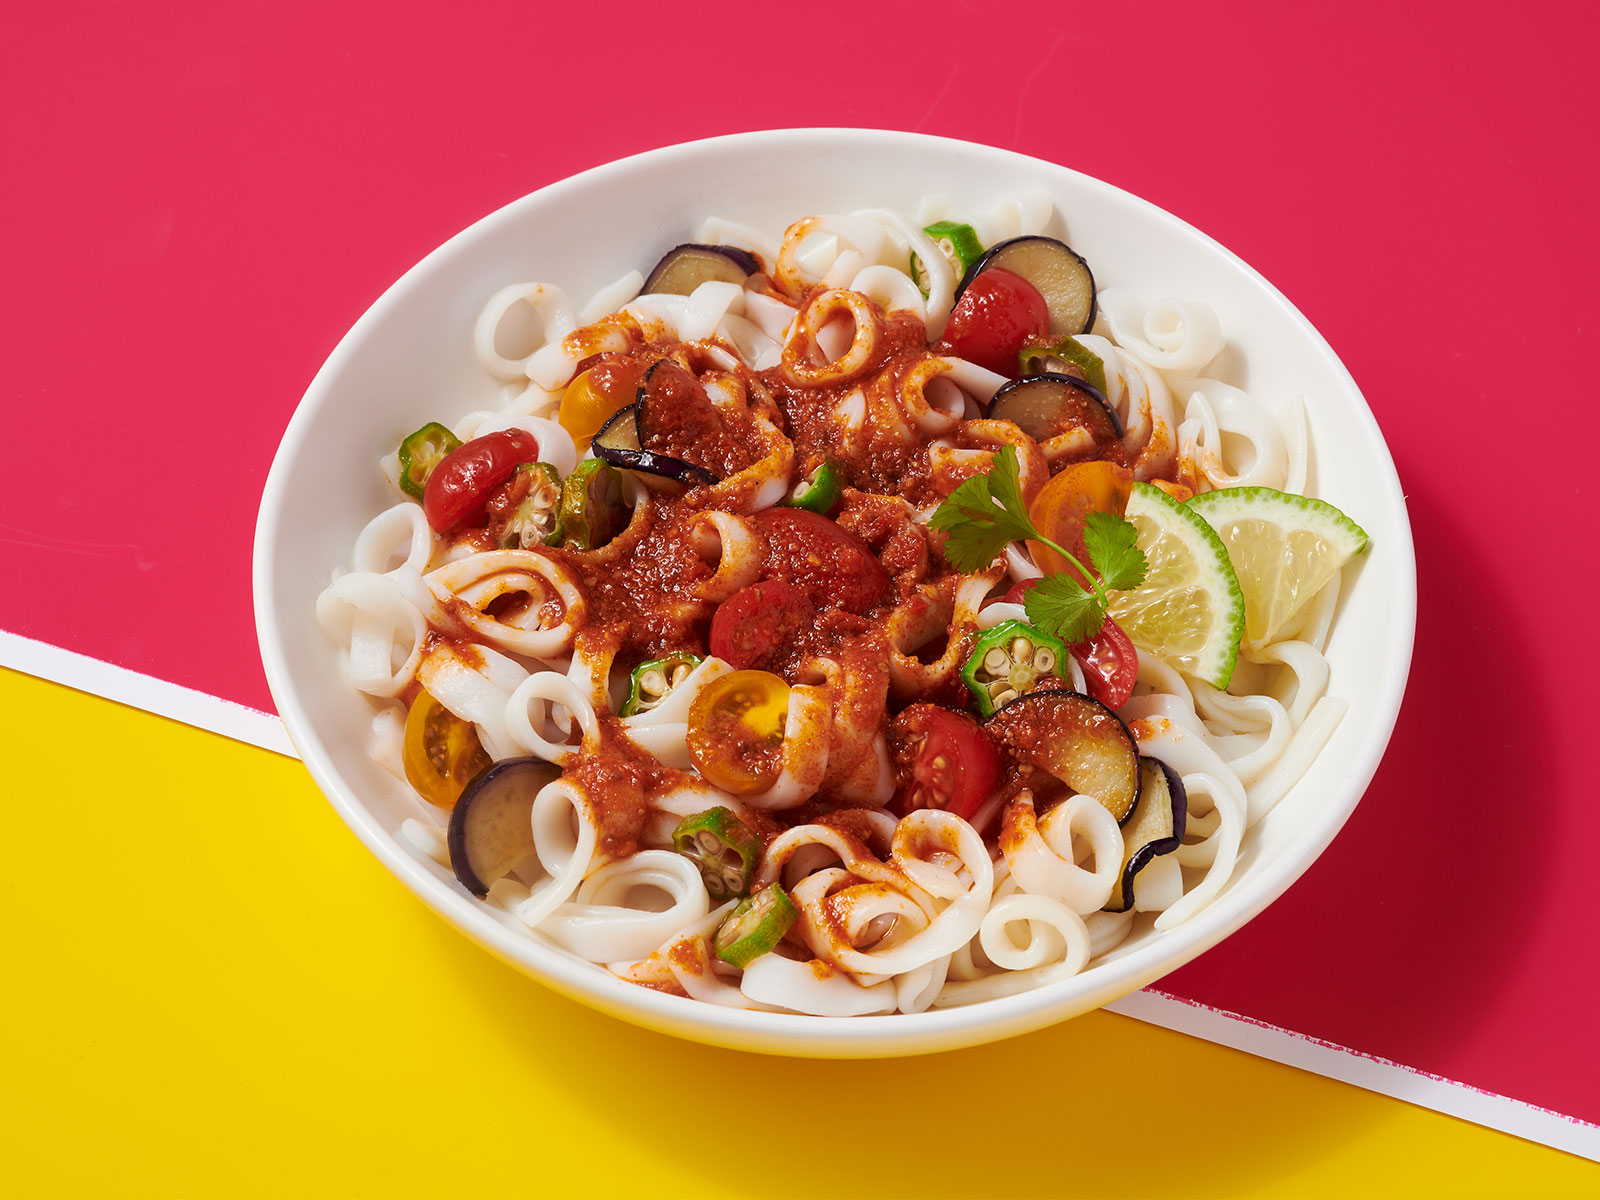 10g Protein Noodles™ with Chraimeh Sauce